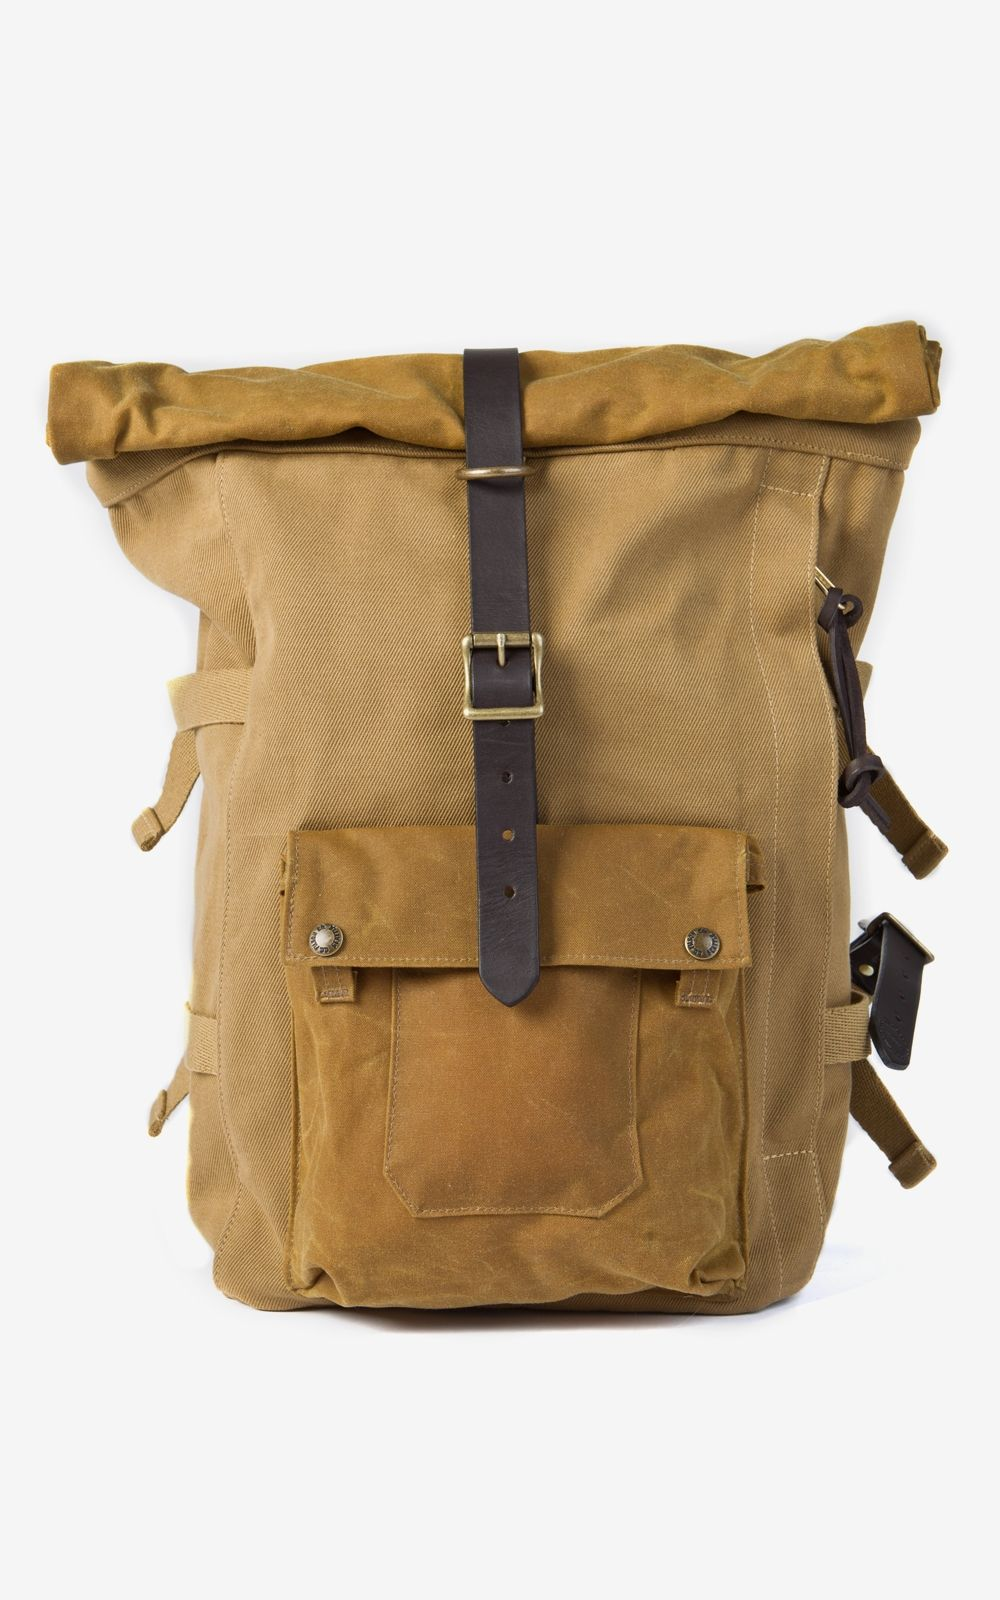 RAW Denim, Shoes and Accessories Online · CULTIZM Online-Shop - Roll-Top Backpack  Tan Filson Roll-Top Backpack Tan 703882421-tan dfe68814be